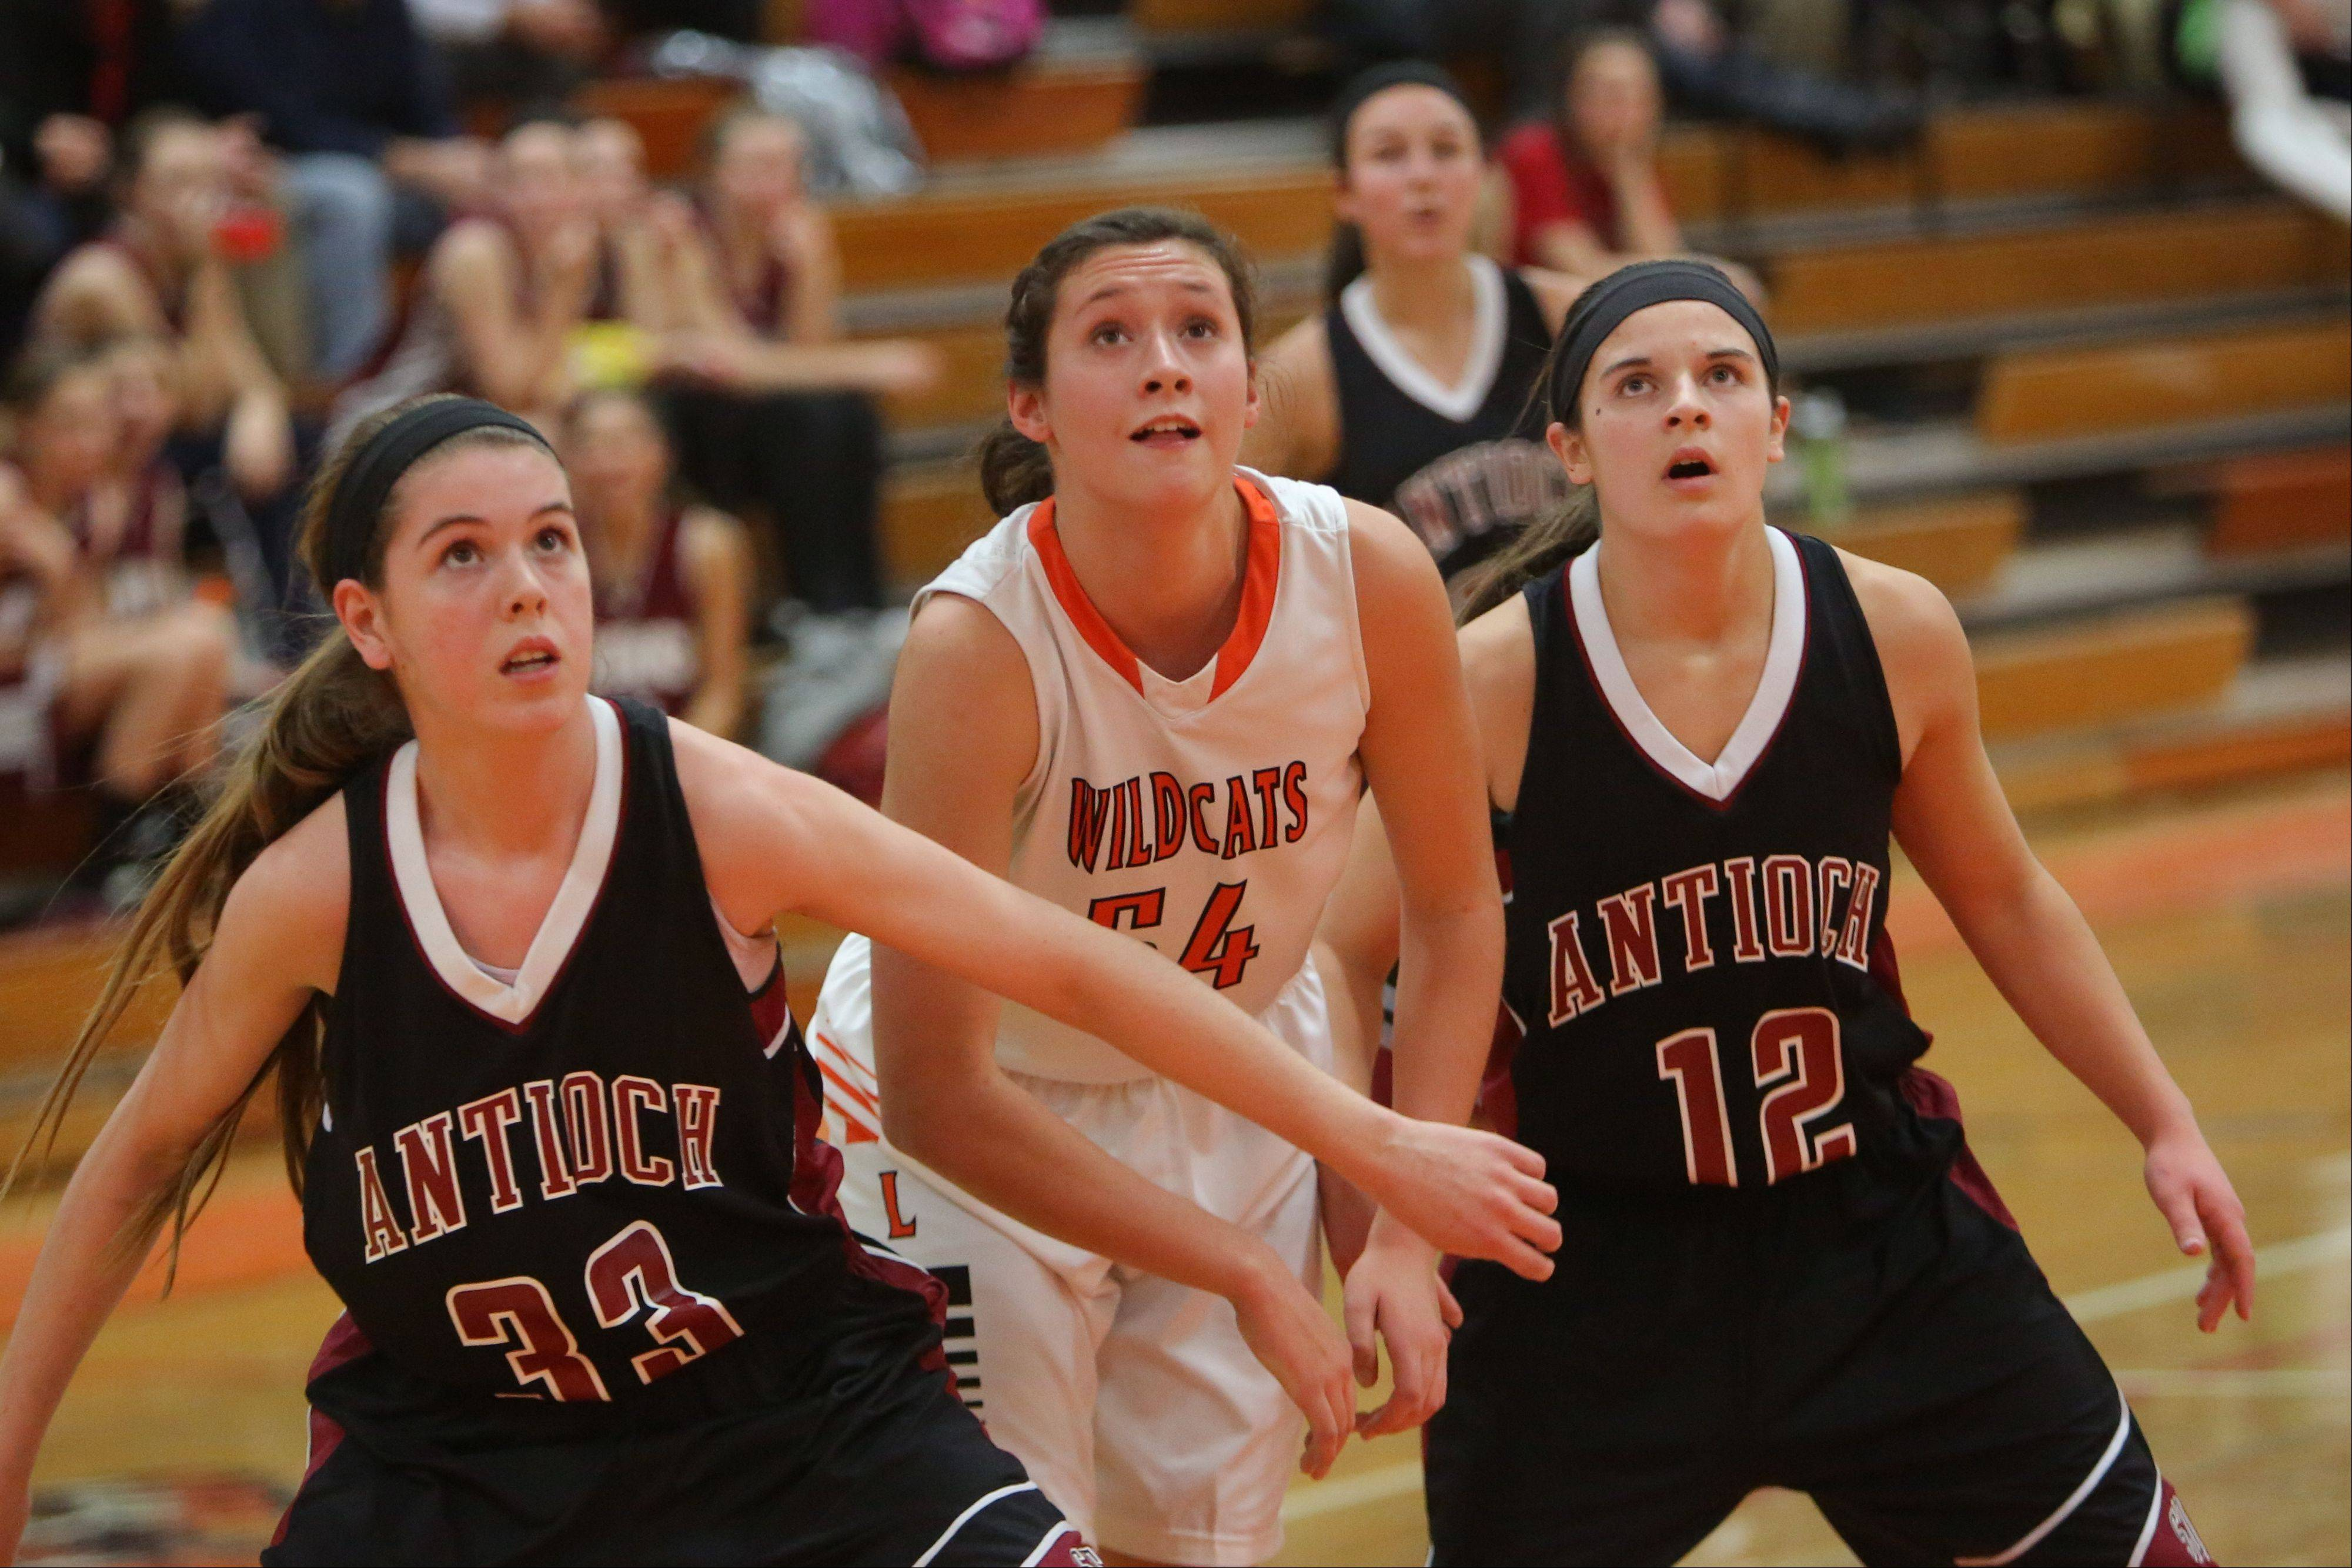 Images: Libertyville vs. Antioch girls basketball